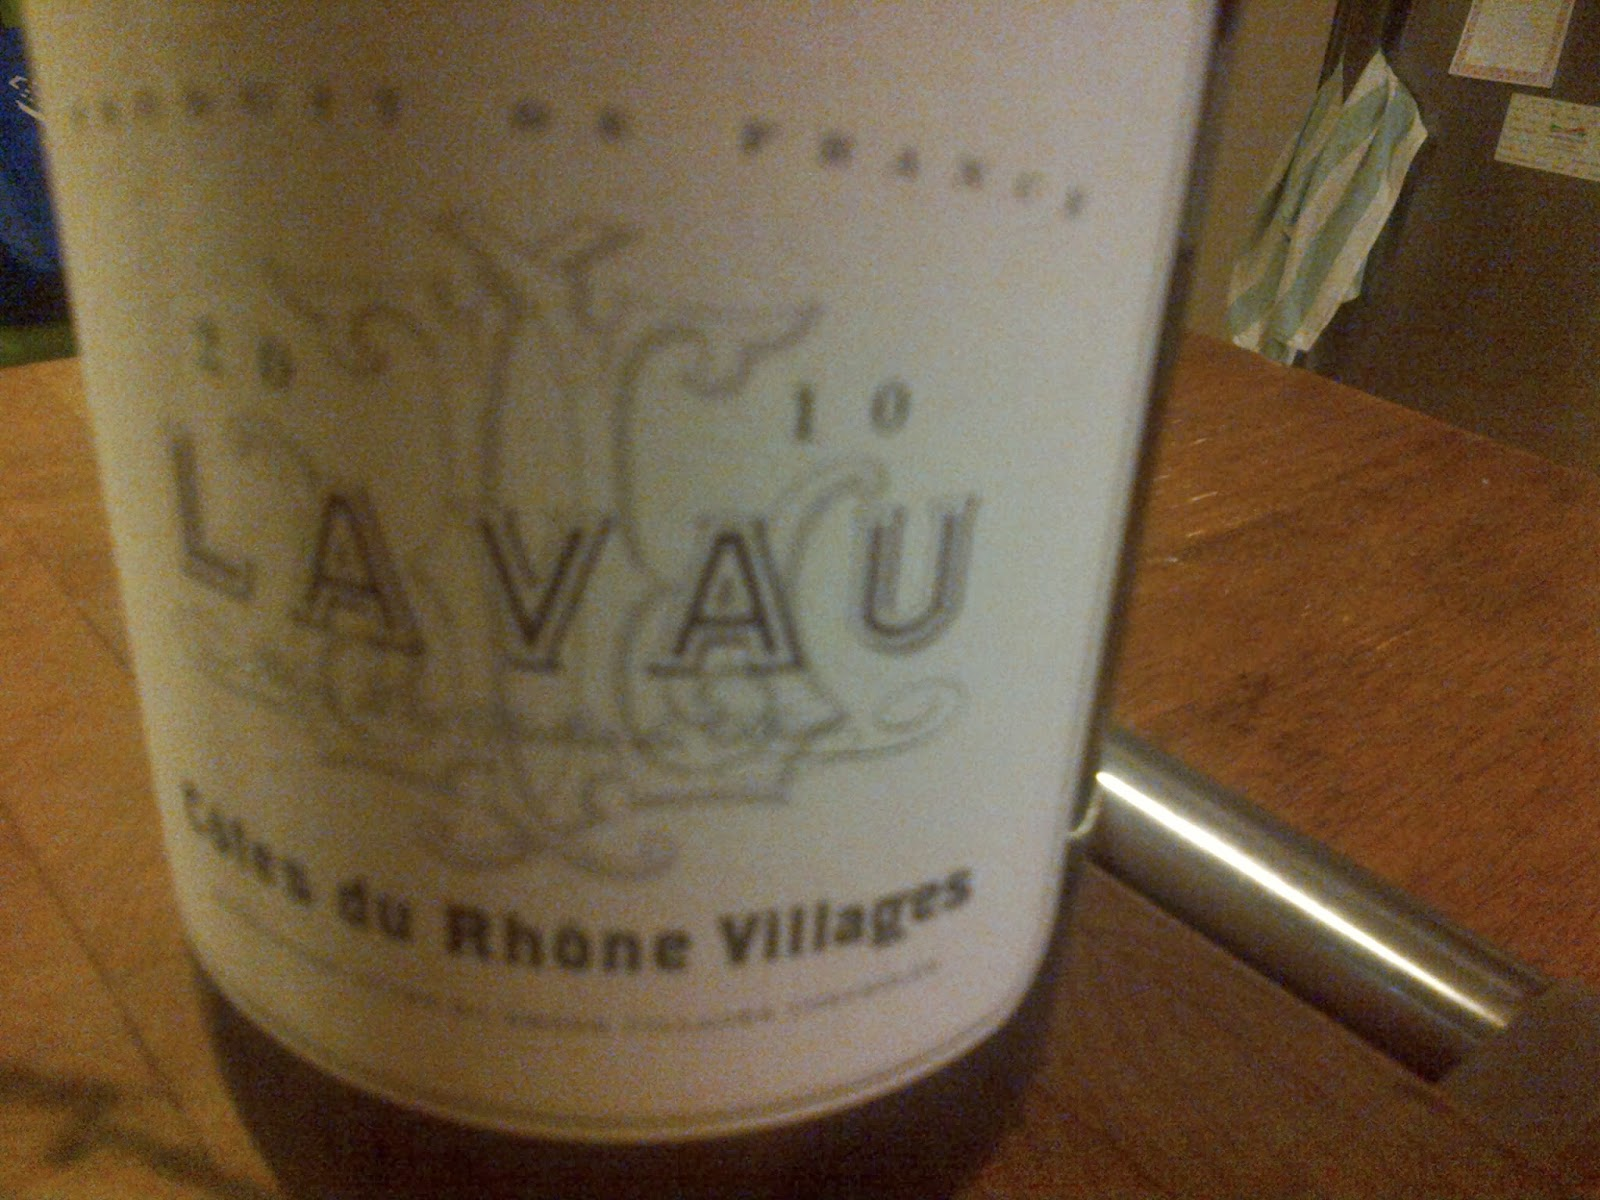 Lavau Cotes du Rhone Villages